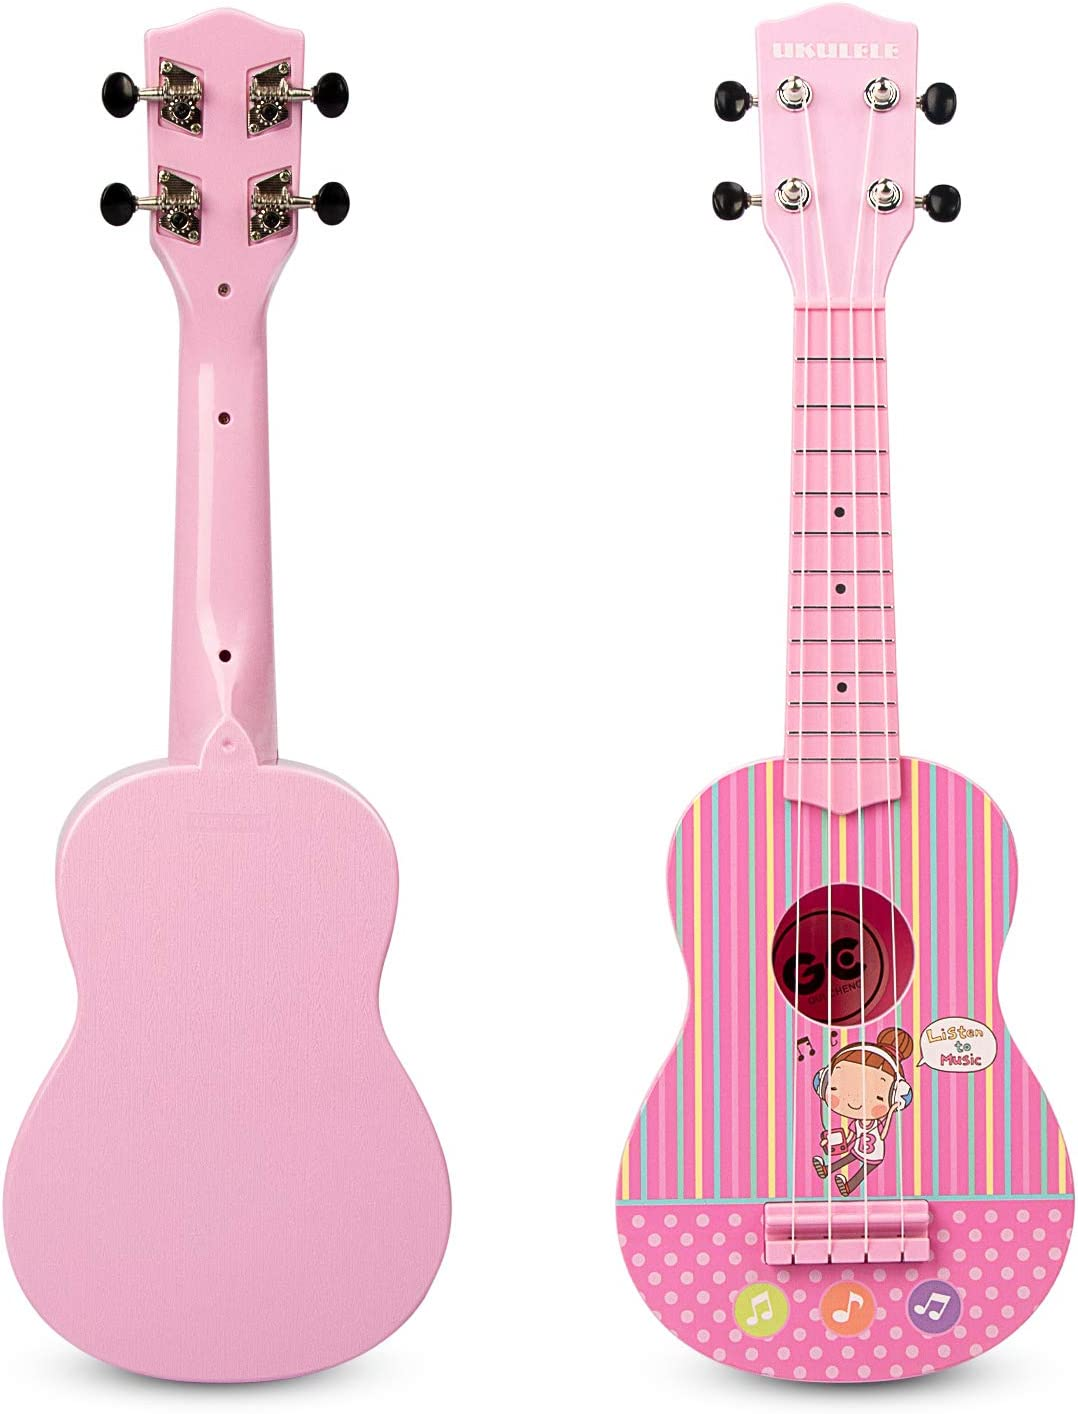 Children Musical Instrument Fun Educational Early Learning Toy 4 String Guitar Ukulele with Gift Box for Toddlers ROFAY 23 Inch Ukulele Toy for Kids